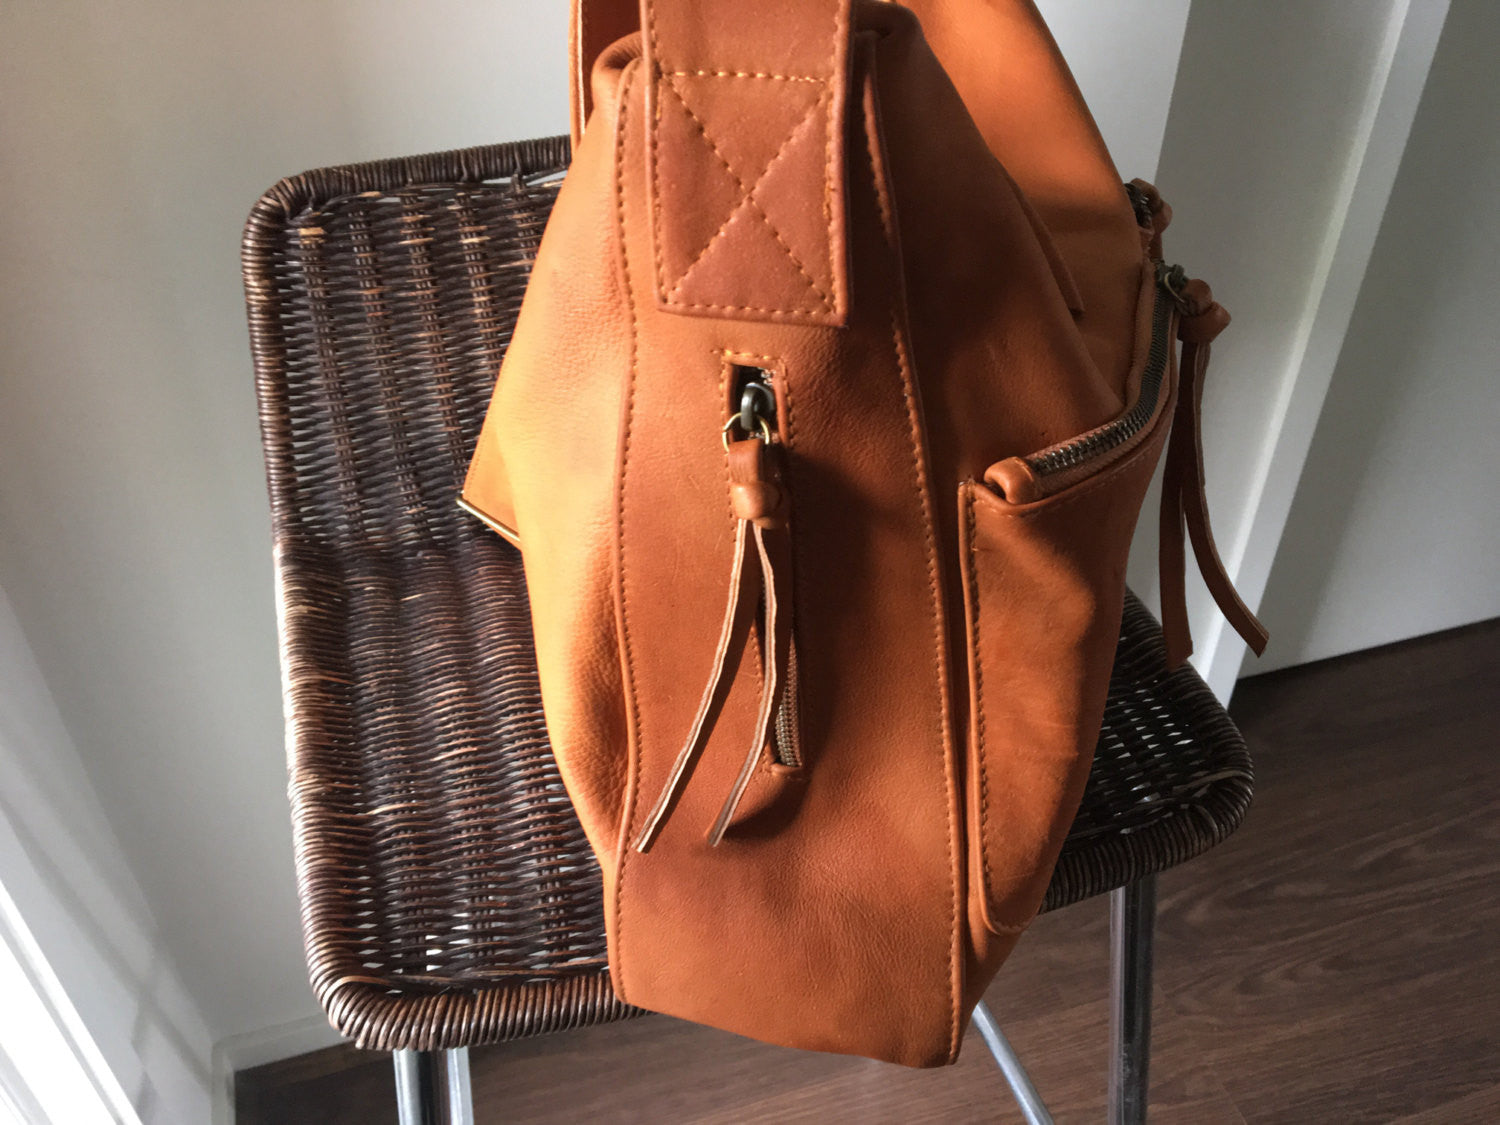 The Sender-Curved,hobo style,handmade leather bag.